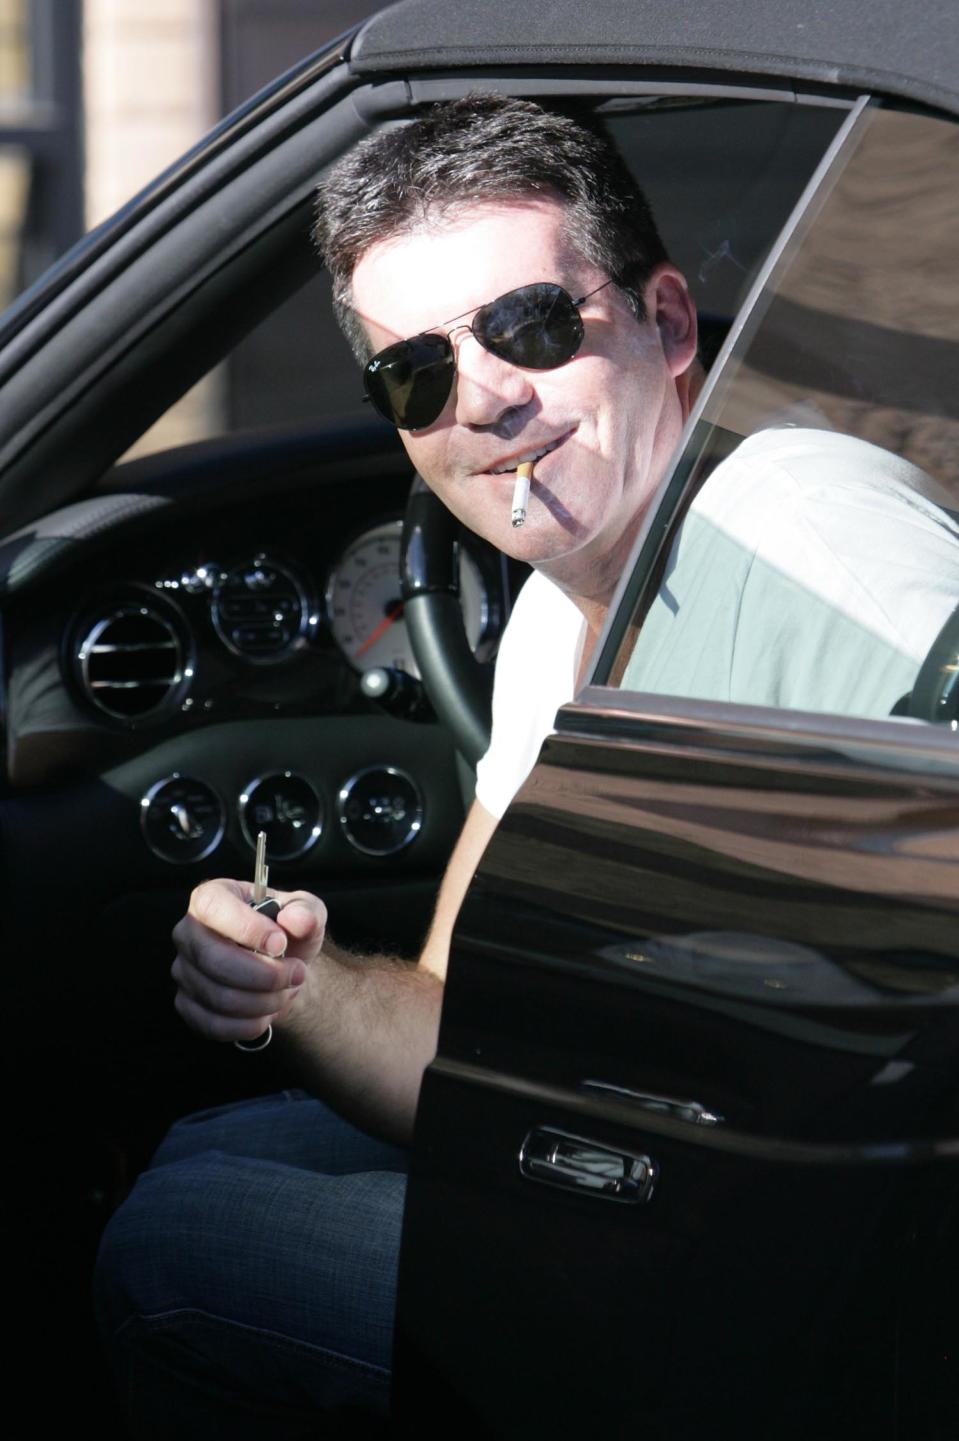 REVOLUTIONPIX/©2010 RAMEY PHOTO Simon Cowell Los Angeles March 14 2010 Simon Cowell and girlfriend Mezhgan Hussainy drive to Malibu Market, in a Black Luxury English Convertible Bentley Azure, priced at over 340 000 usd, to have pictures taken with fans, chat Howie Mandel and go shopping at John Varvatos Revpix (Photo by Philip Ramey/Corbis via Getty Images)